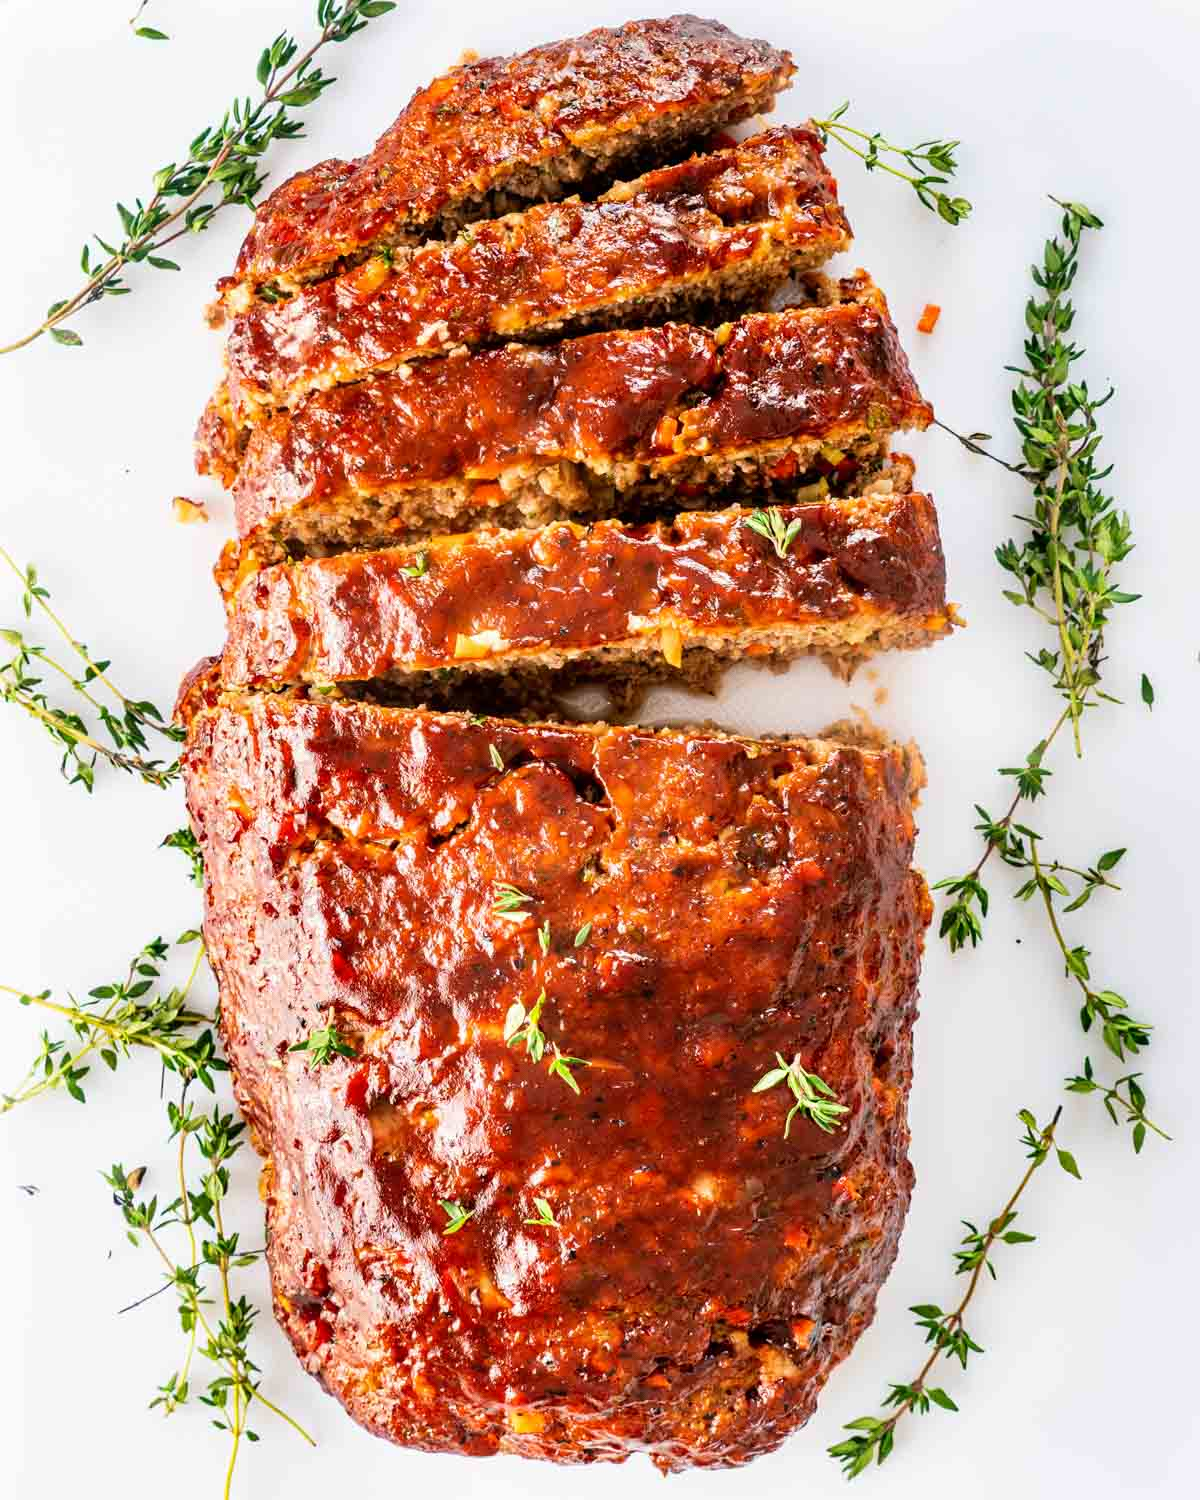 overhead shot of a meatloaf sliced on a white cutting board.